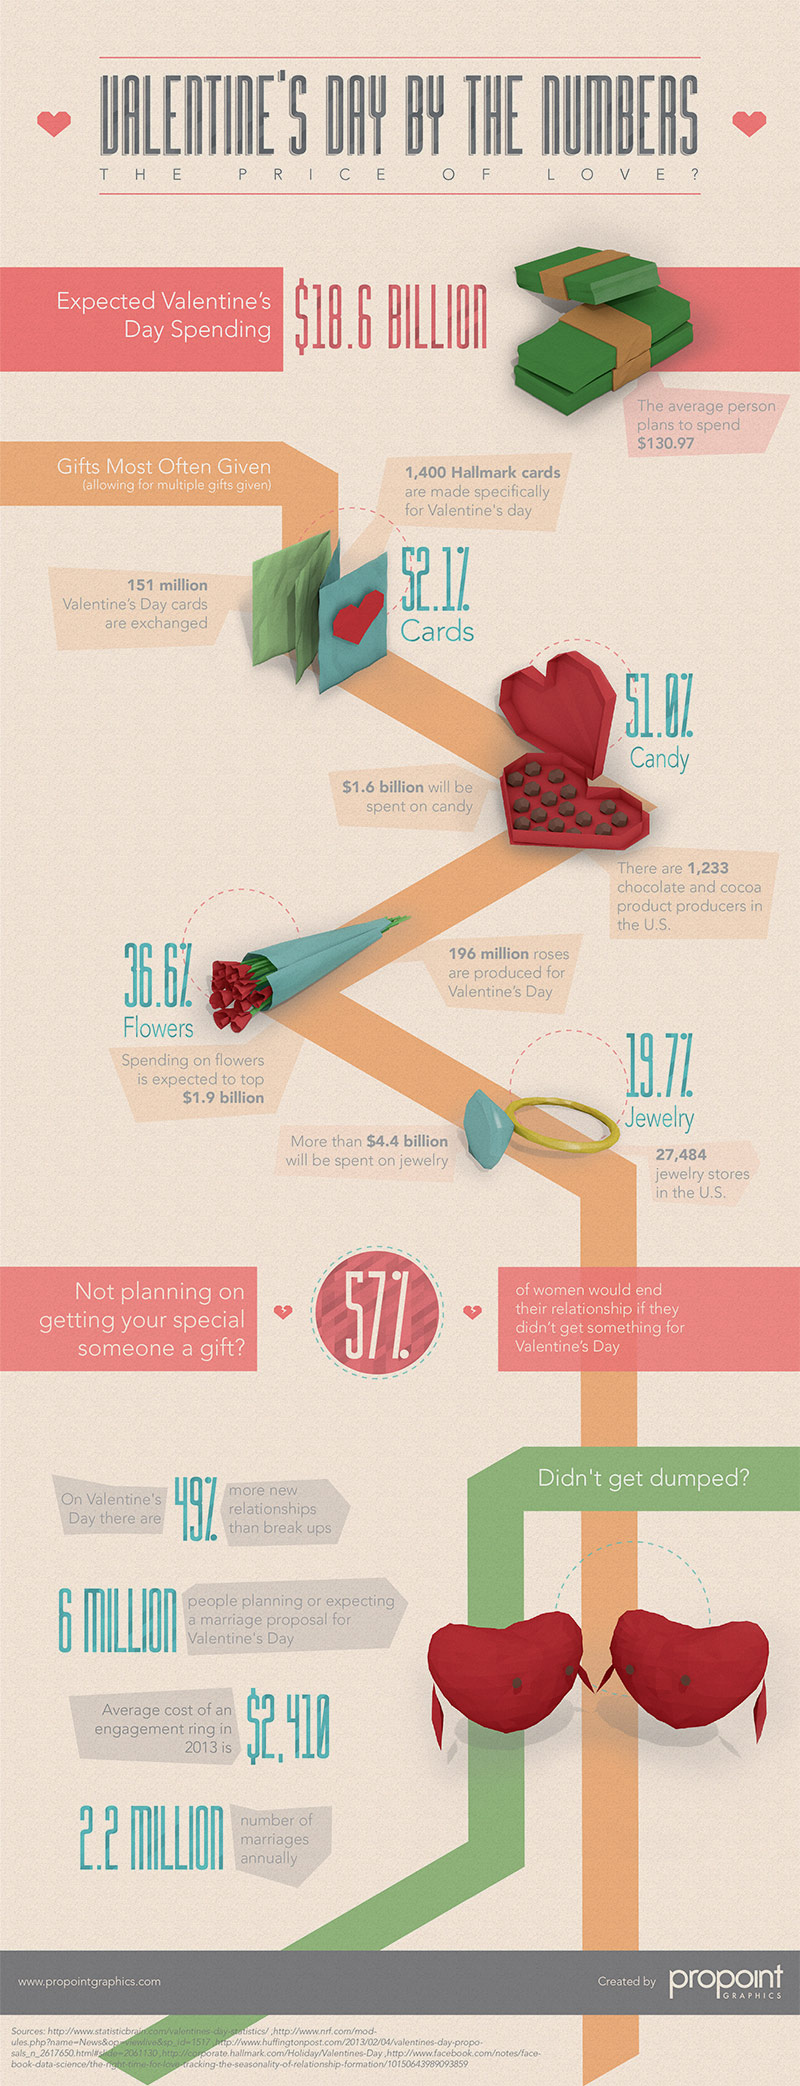 Valentine's Day Infographic By The Numbers